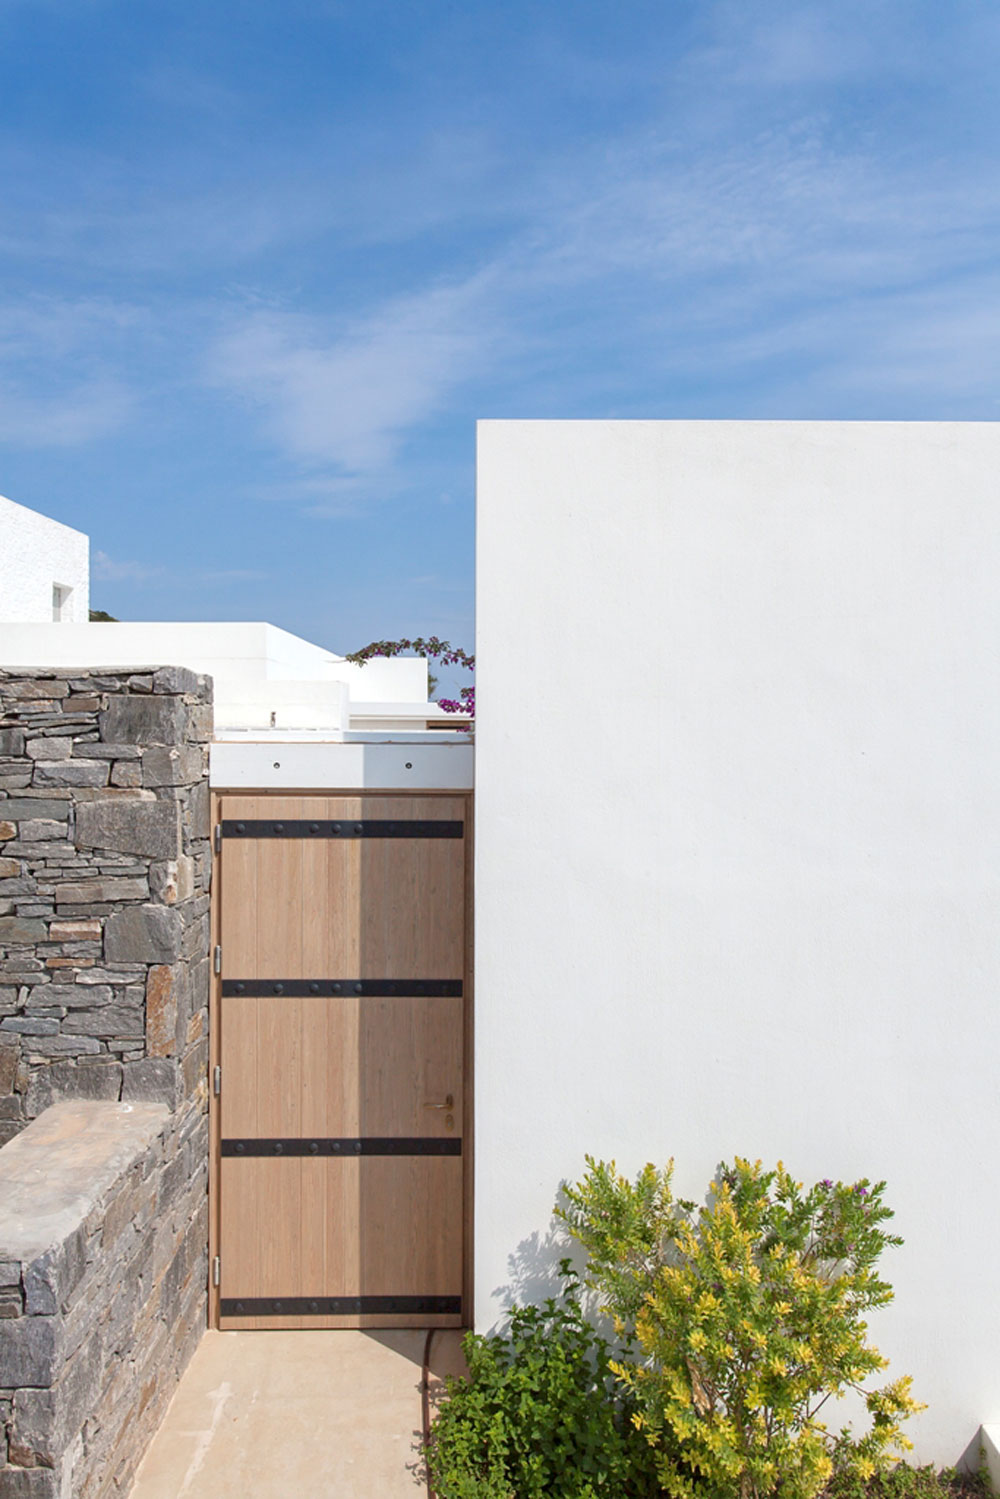 volume-composition-residence-project-studio265-18